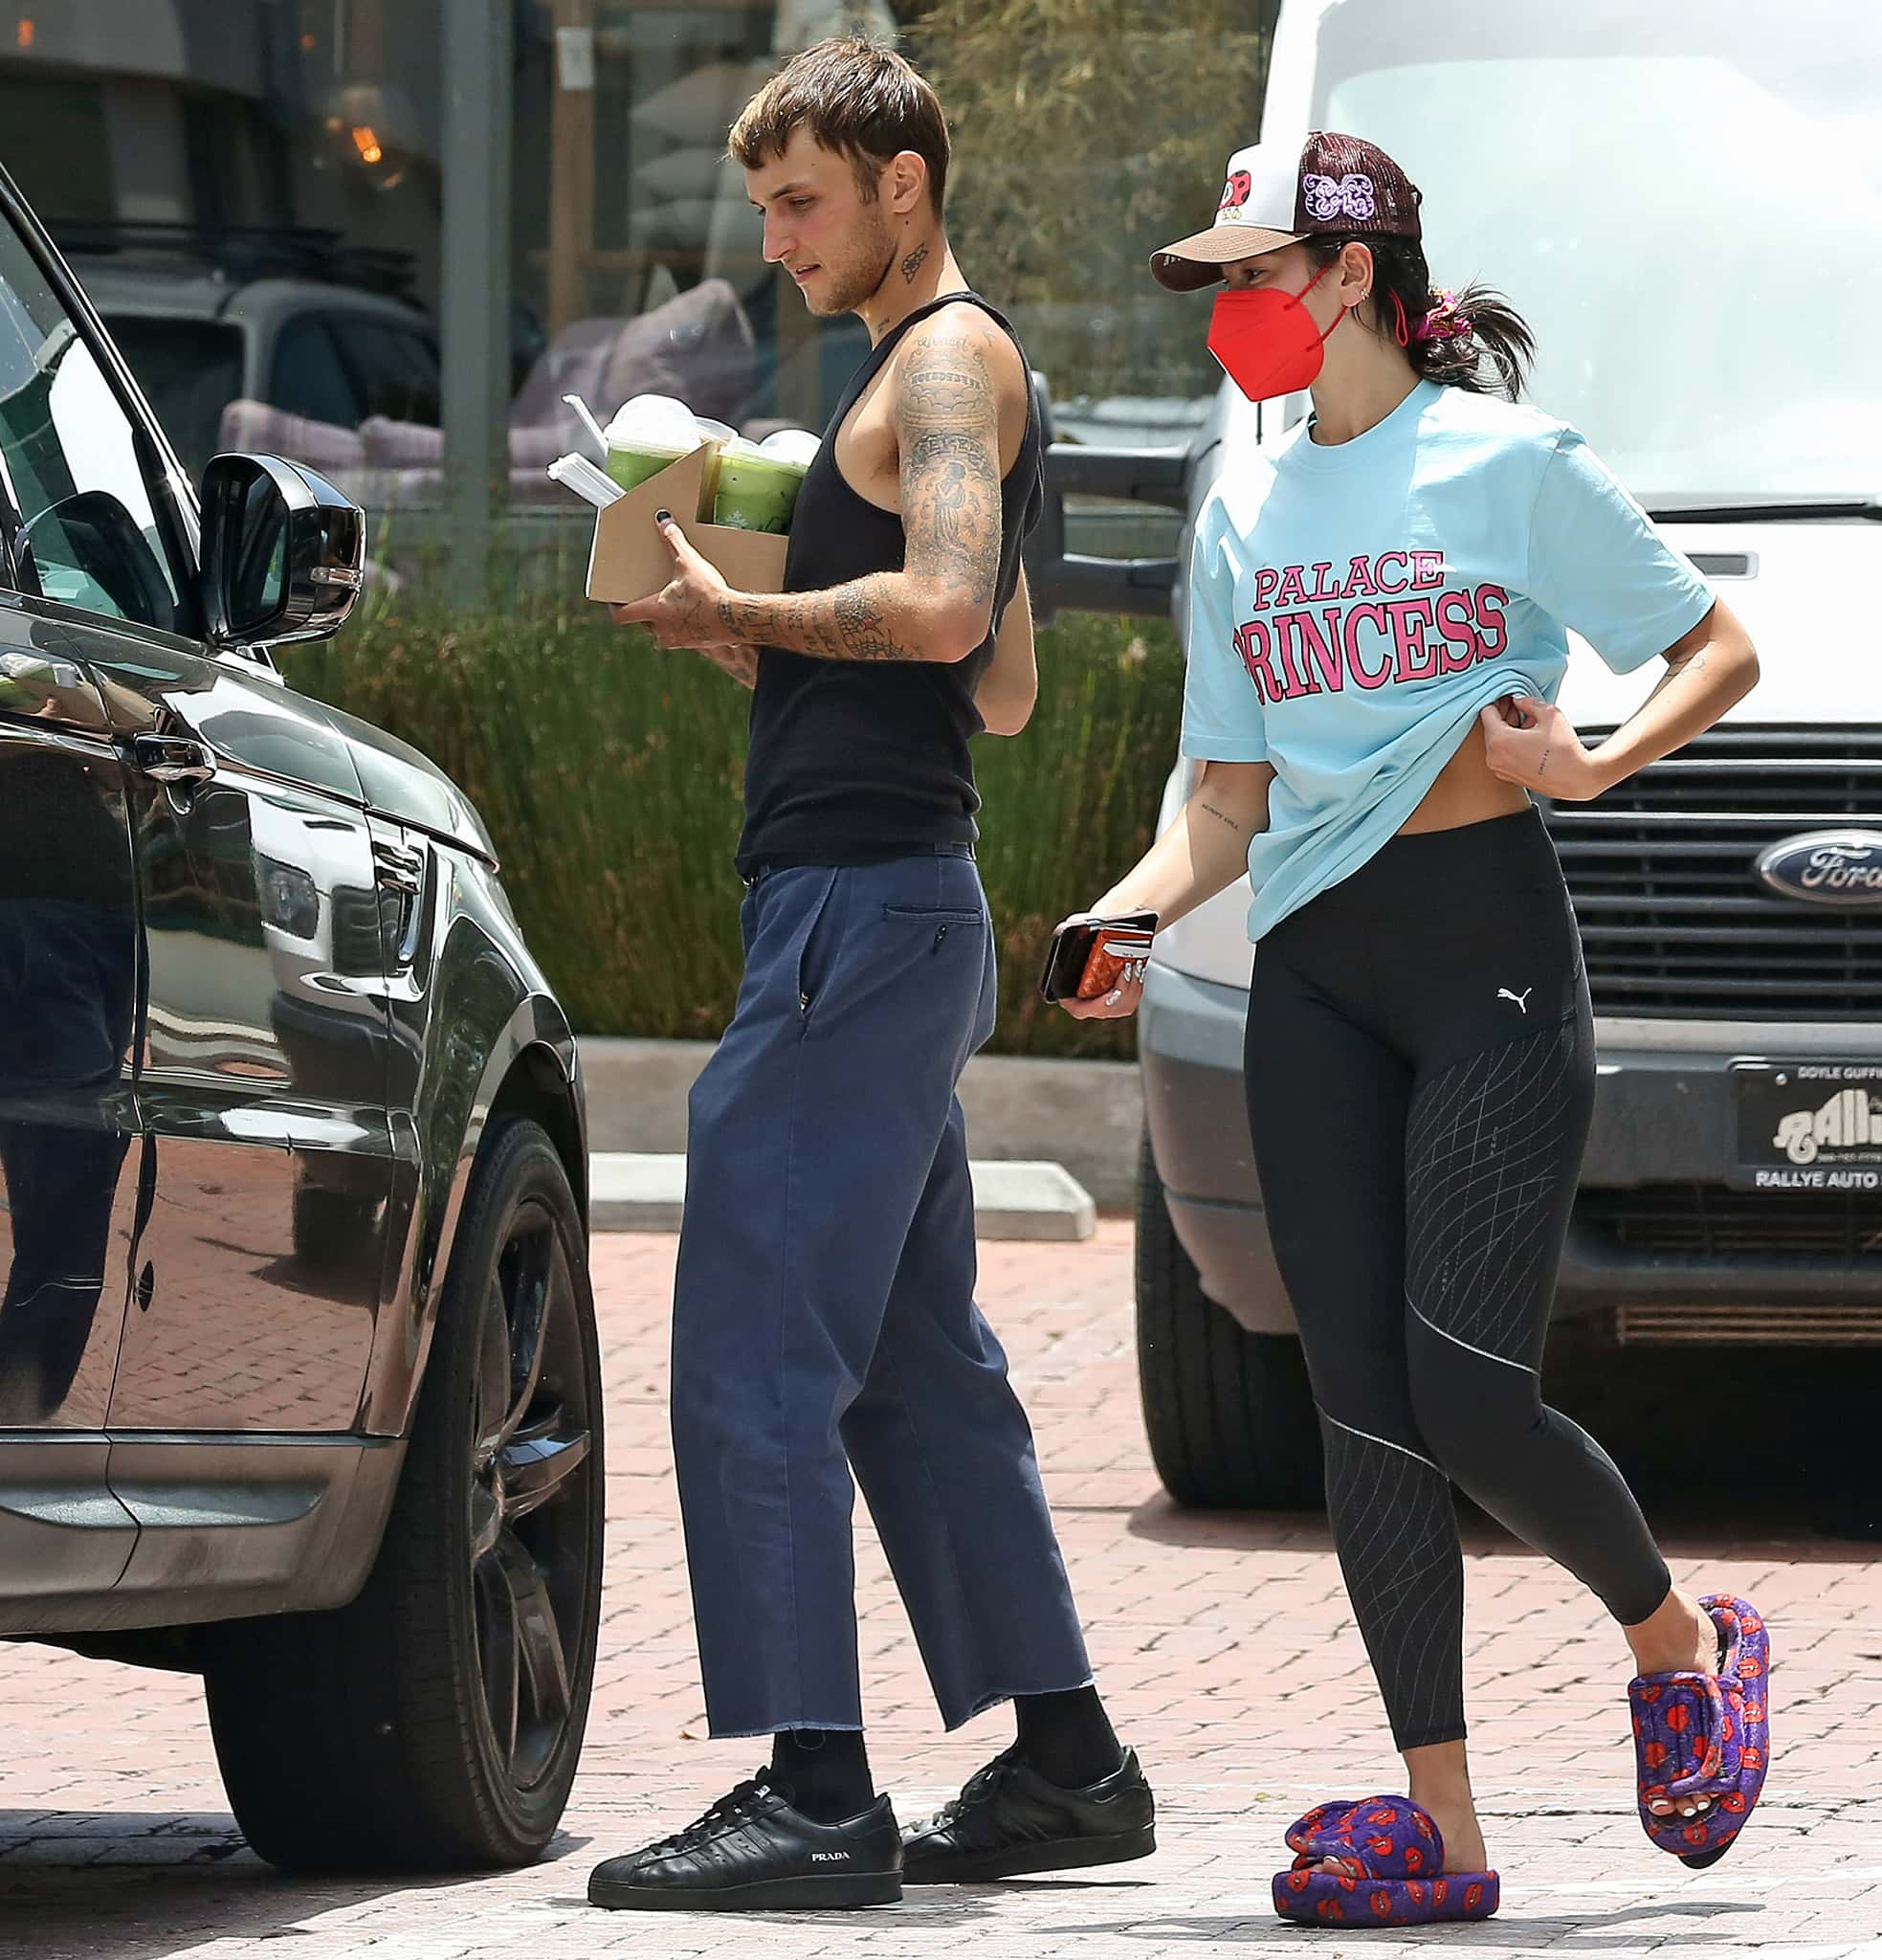 Anwar Hadid shows off his tattoos in a black tank top paired with loose pants and Prada sneakers